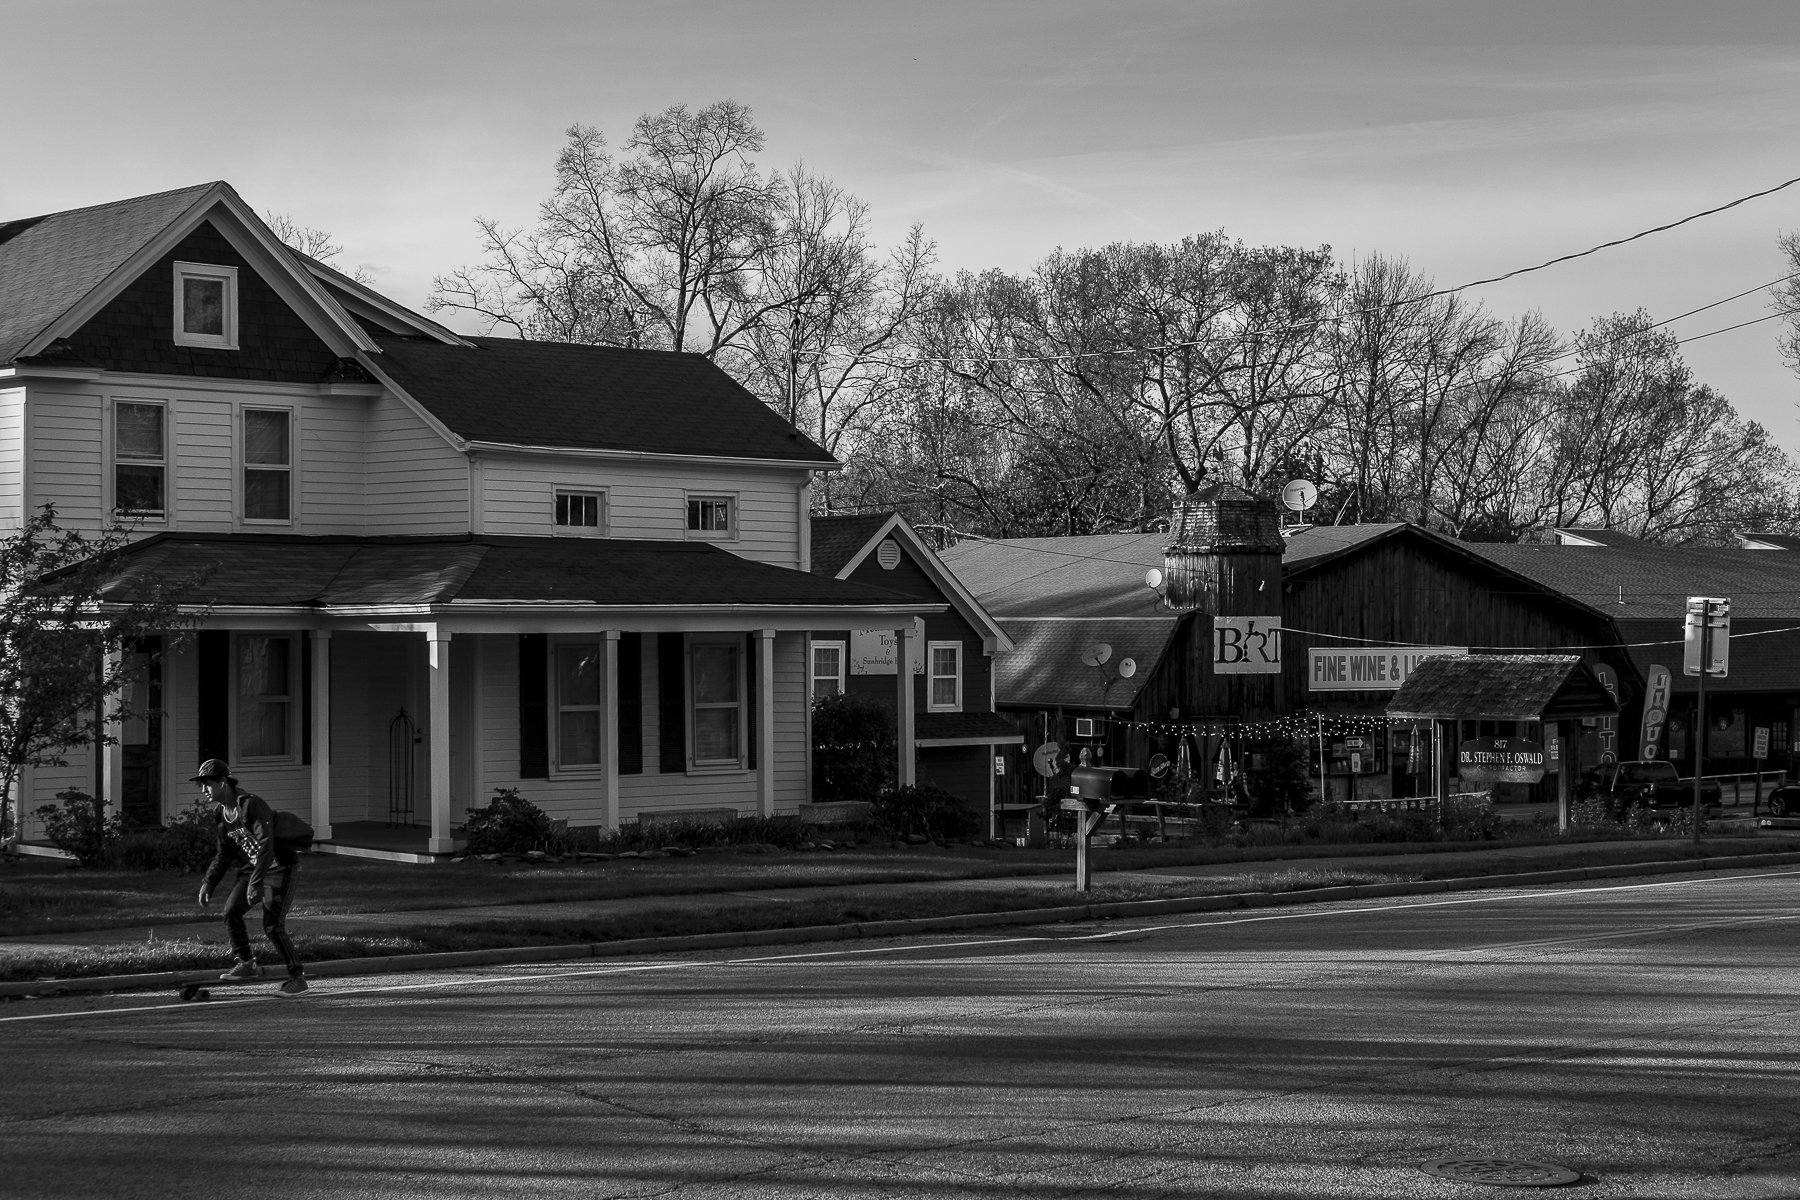 Chestnut Ridge Rd, also known as Route 45, is the main street that cuts through Chestnut Ridge, a small town in the suburbs of New York.